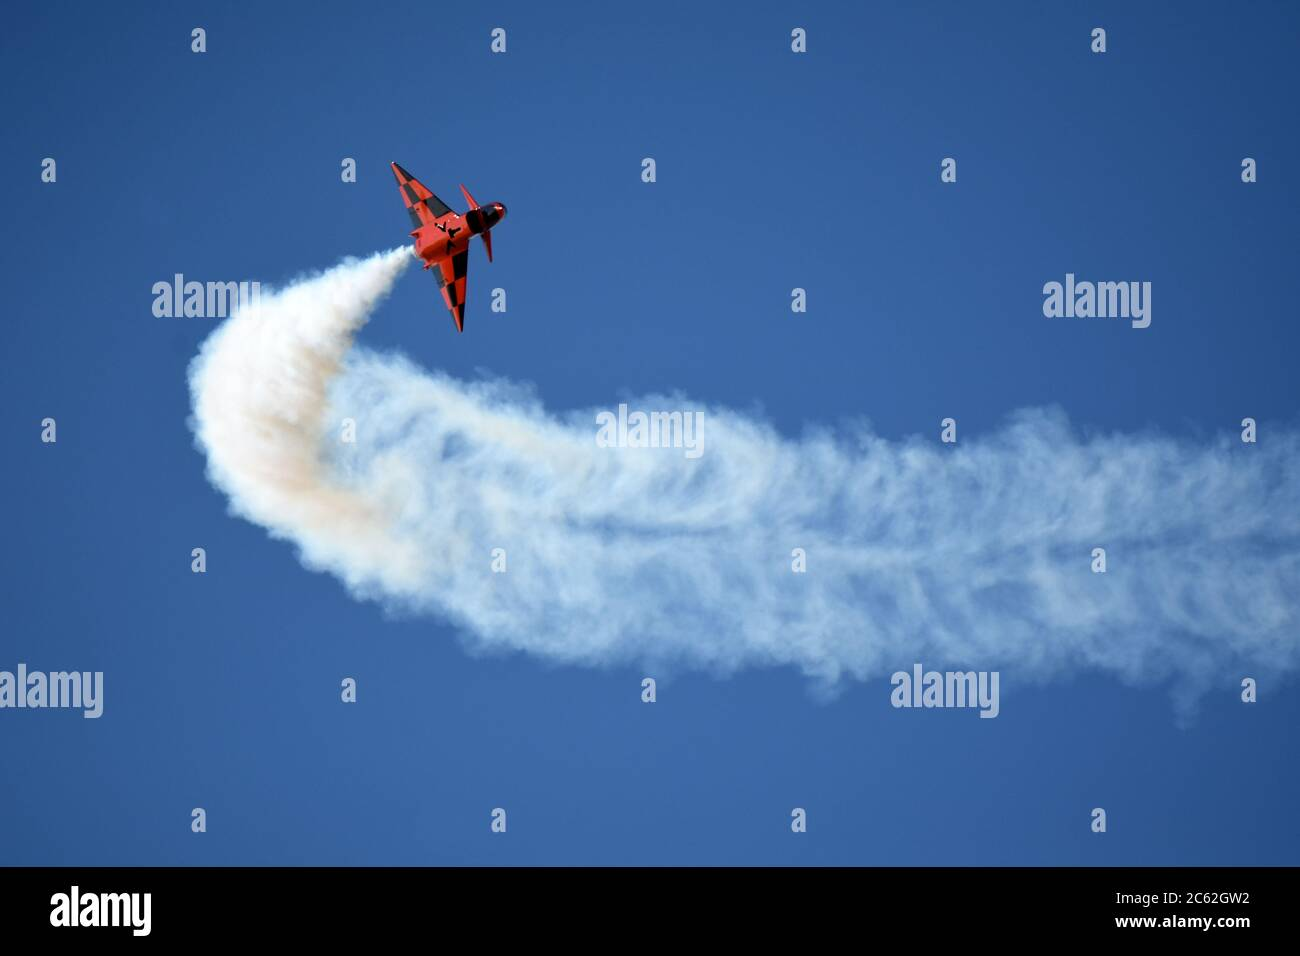 Jet plane in flight during an airshow Stock Photo